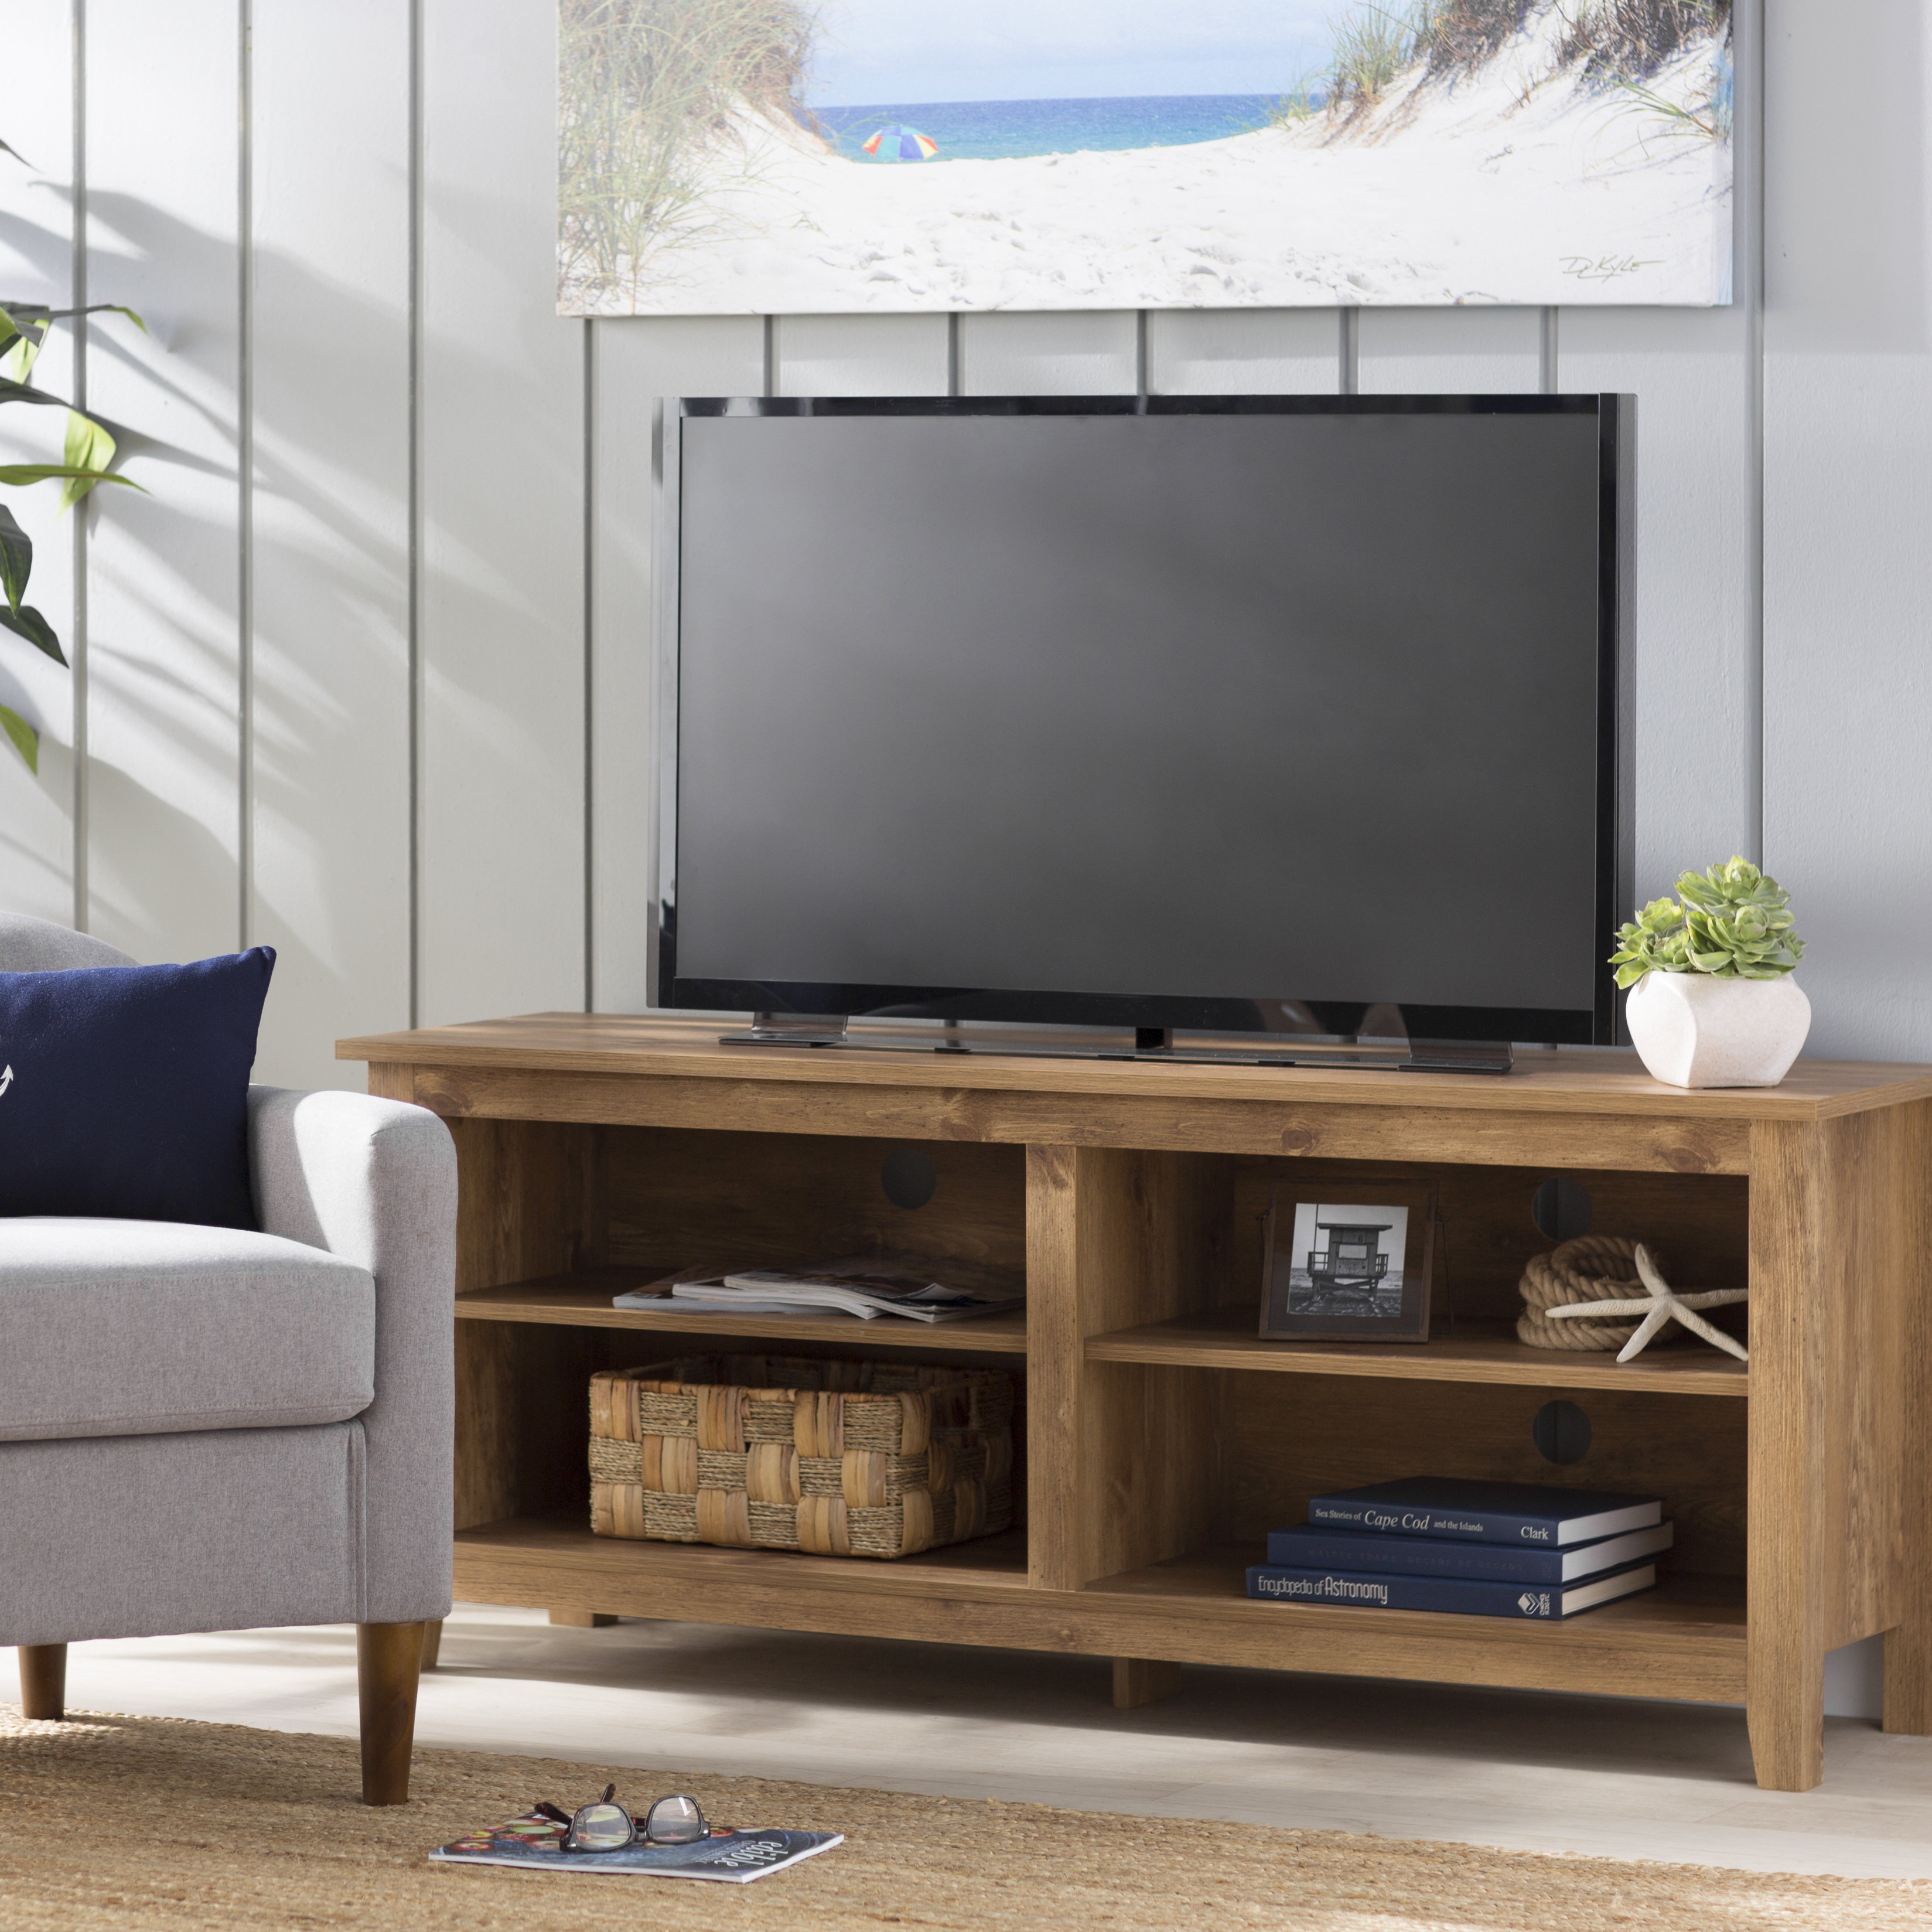 90 Inch Tv Stand | Wayfair Inside Laurent 60 Inch Tv Stands (View 9 of 30)